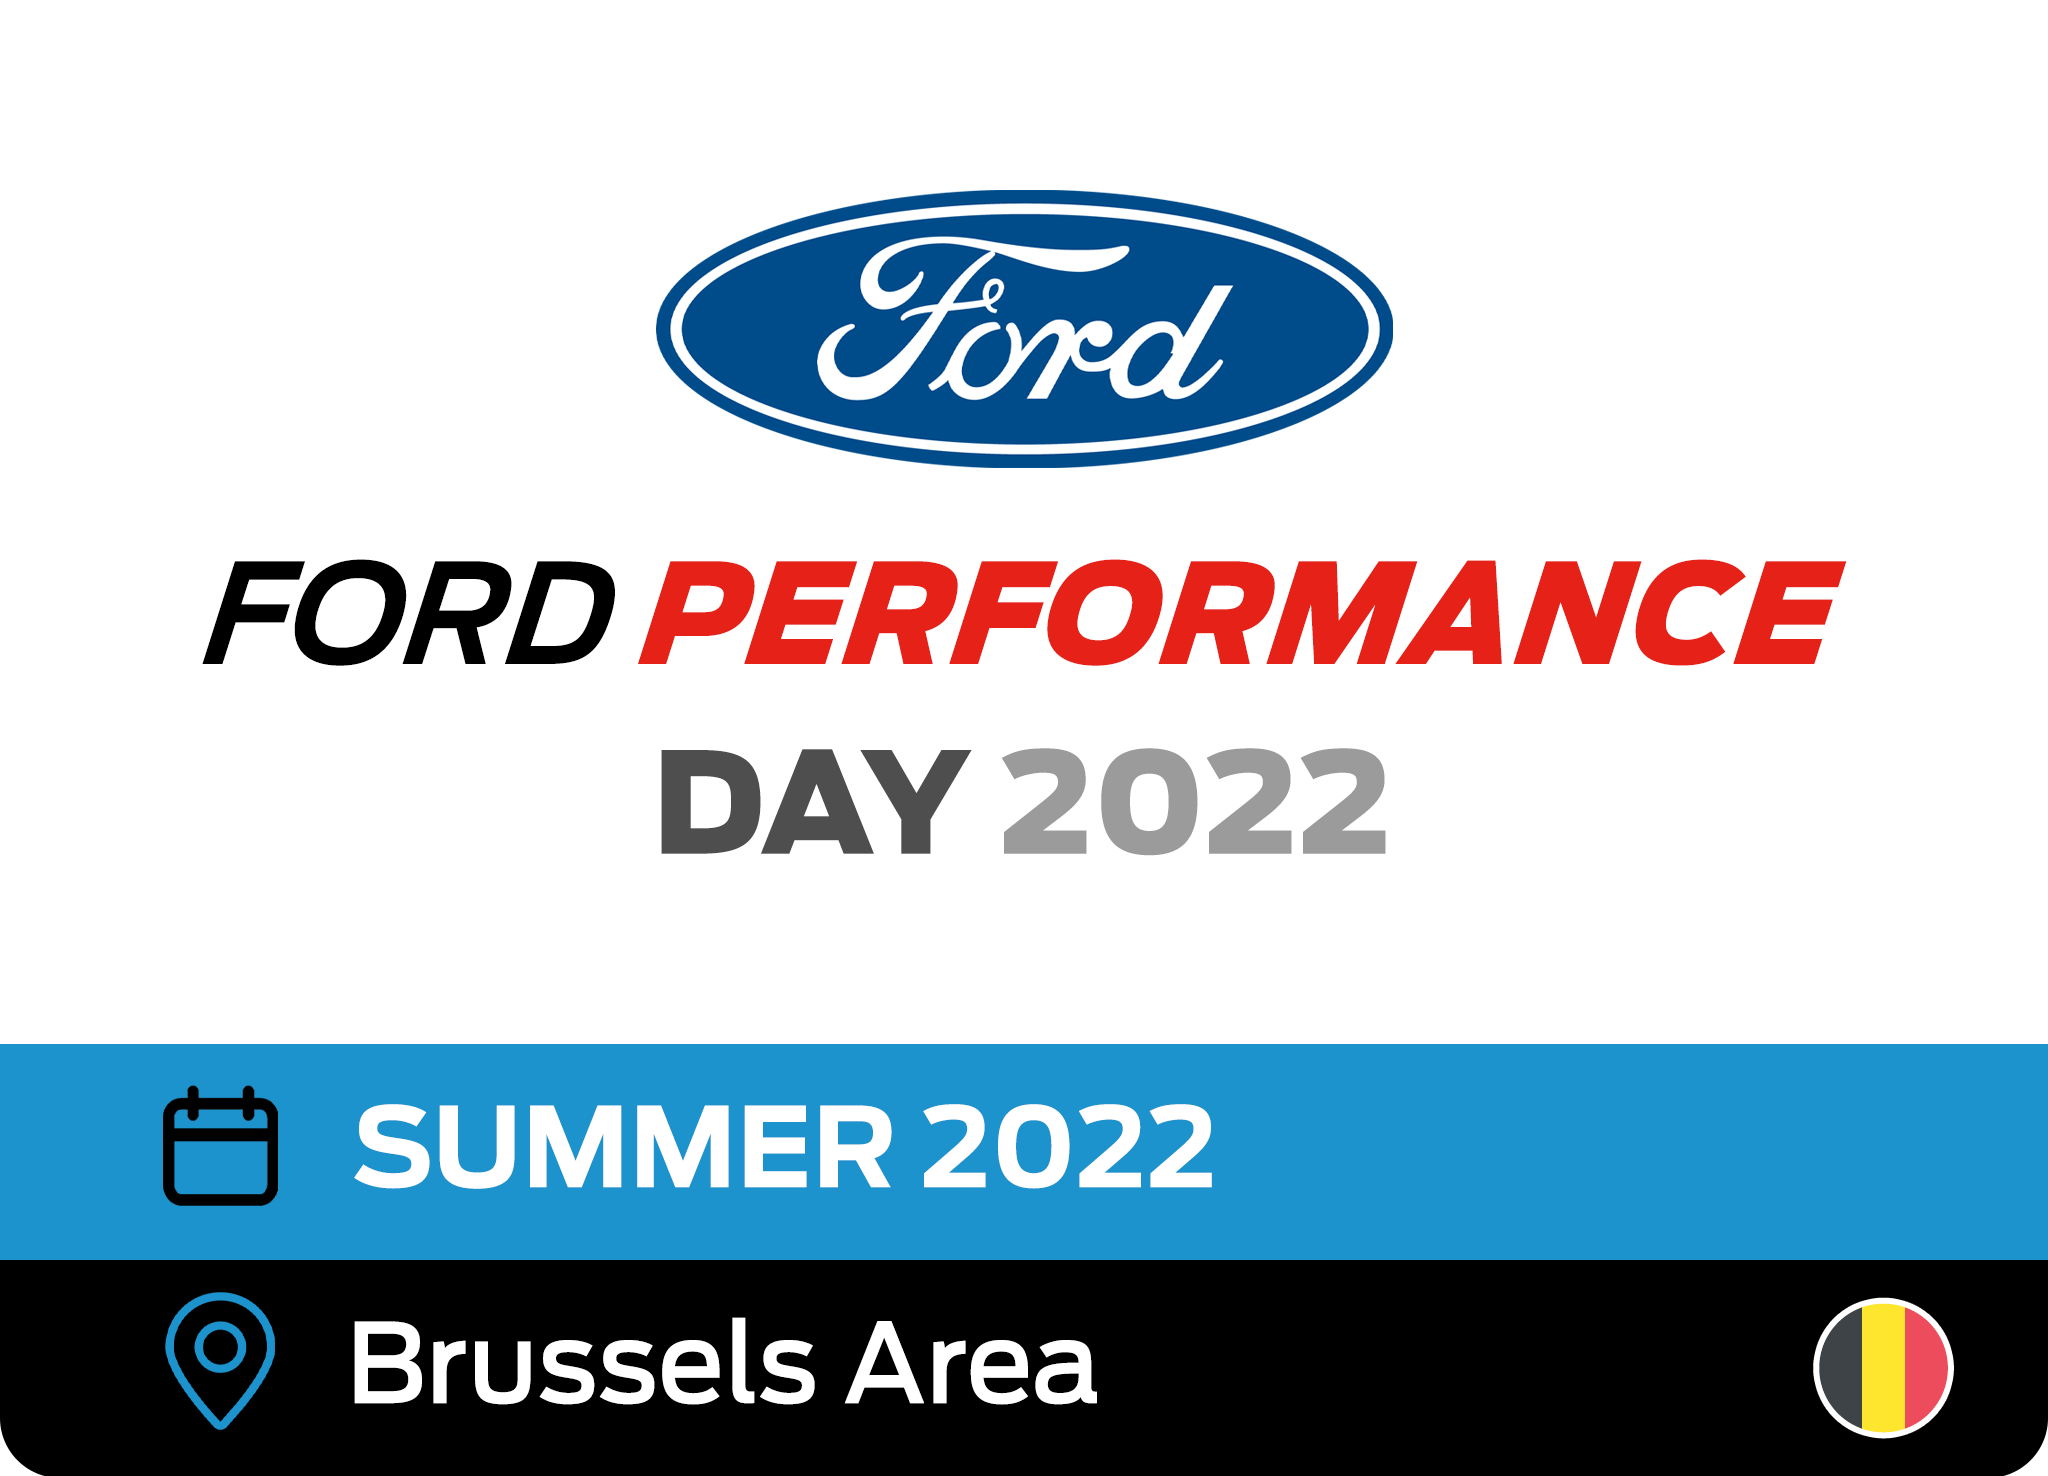 Ford Performance Day 2022